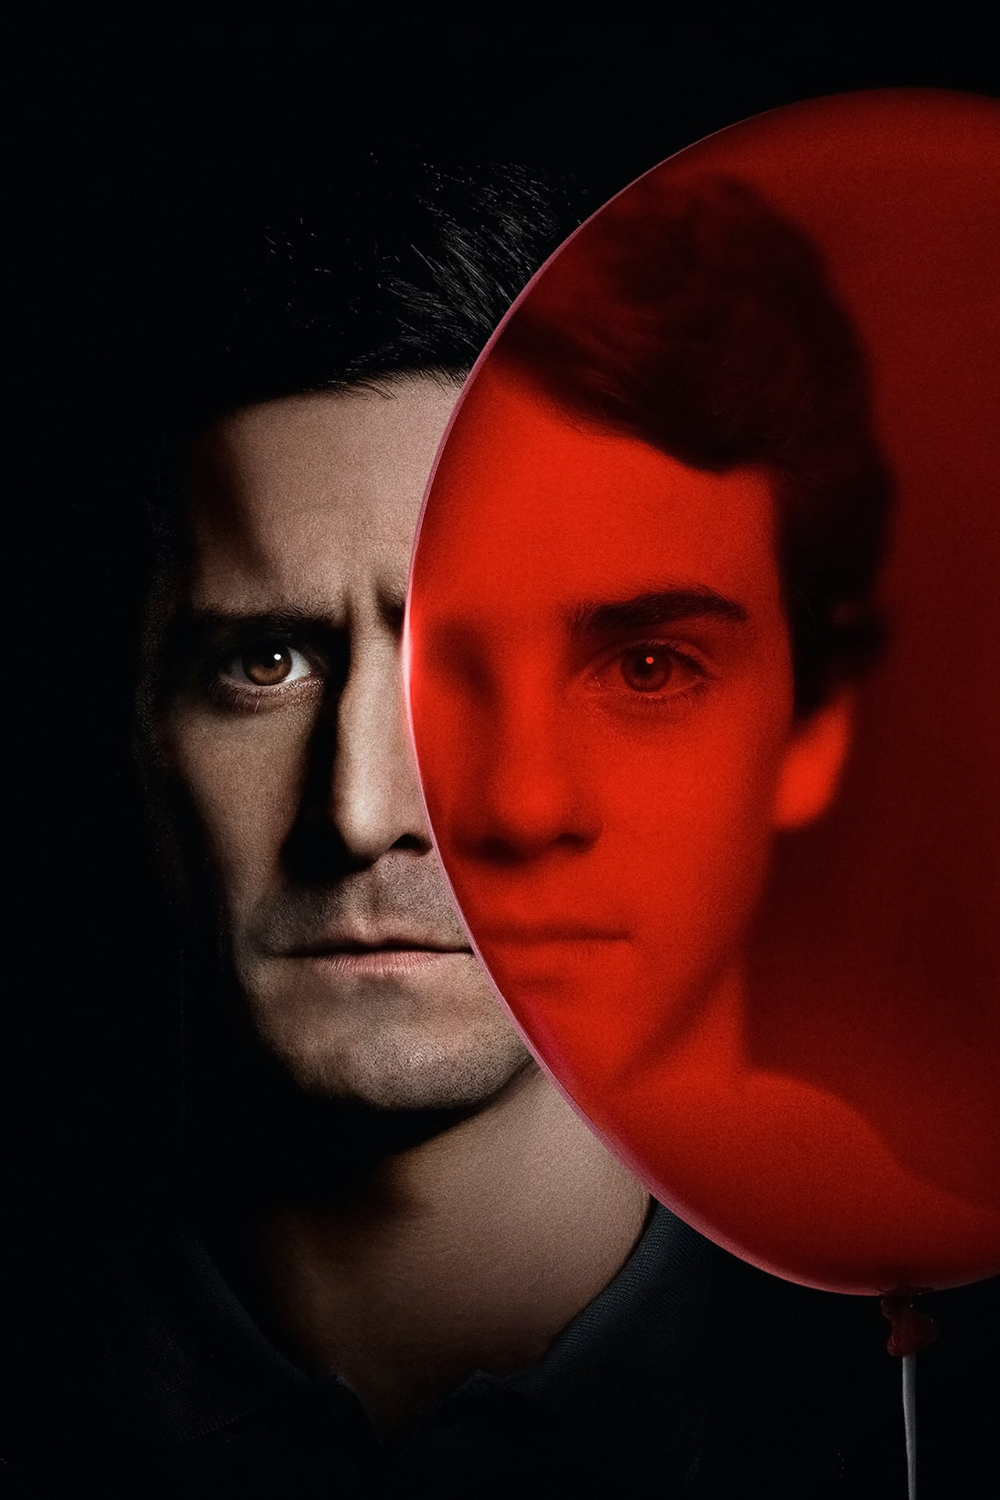 123Movies WaTch It Chapter Two [2019] Online Free - James McAvoy, Jessica Chastain, Bill Hader - 27 years after overcoming the malevolent supernatural entity Pennywise, the former members of the Losers' Club, who have grown up and moved away from Derry, are brought back together by a devastating ...It Chapter Two,It Chapter Two Cast,It Chapter Two Google Docs,It Chapter Two Showing Times,It Chapter Two Trailer,It Chapter Two Review,It Chapter Two Full Movie,It Chapter Two Movie Times,It Chapter